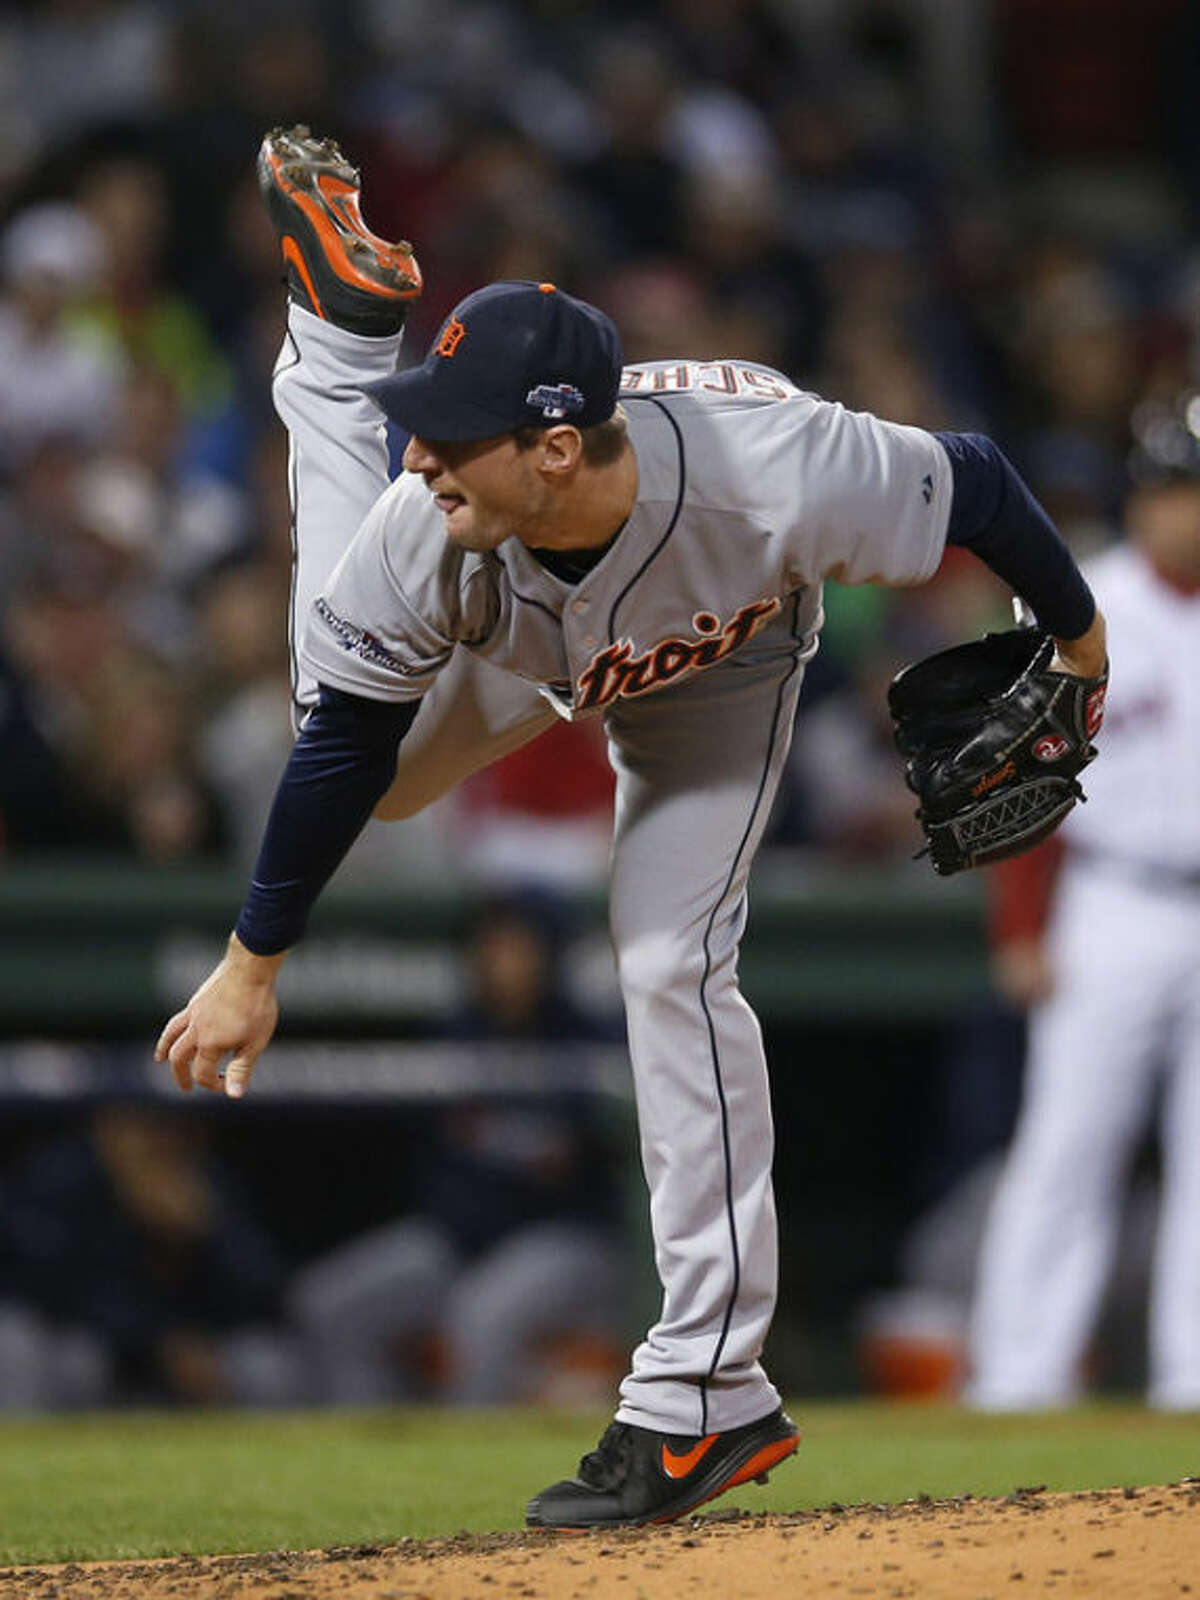 Detroit Tigers' Max Scherzer throws in the third inning during Game 2 of the American League baseball championship series against the Boston Red Sox Sunday, Oct. 13, 2013, in Boston. (AP Photo/Elise Amendola)